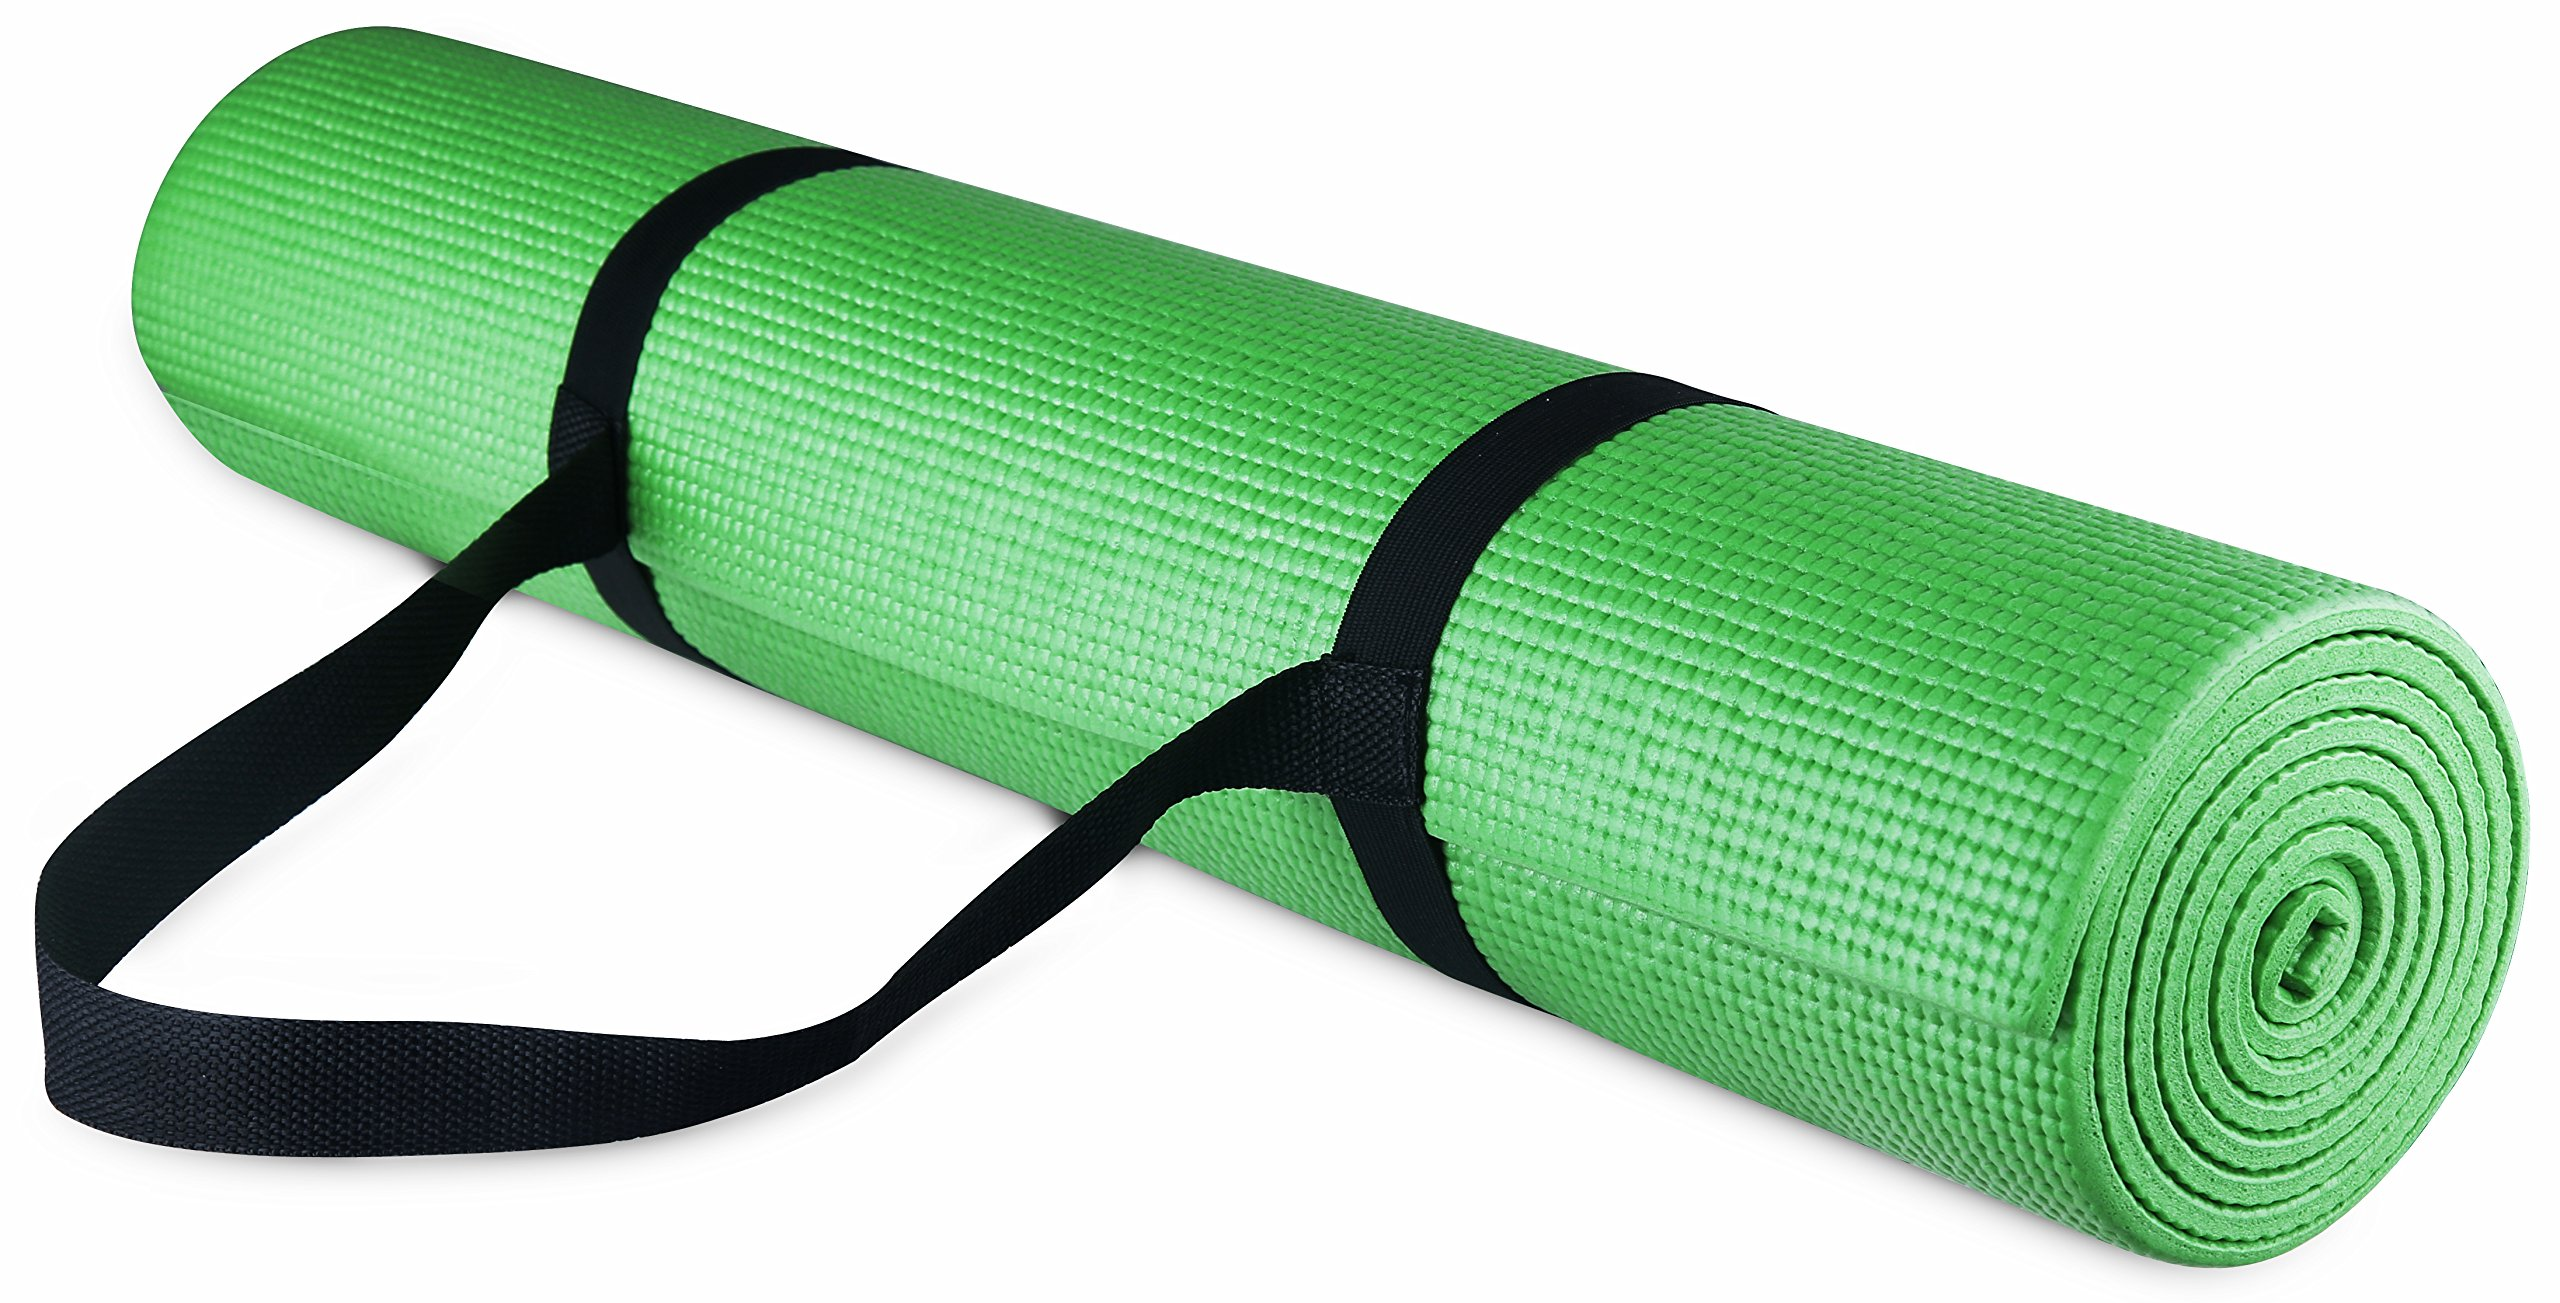 Amazon.com: HoogaGoods Be Alive Yoga Combo Accessories ...